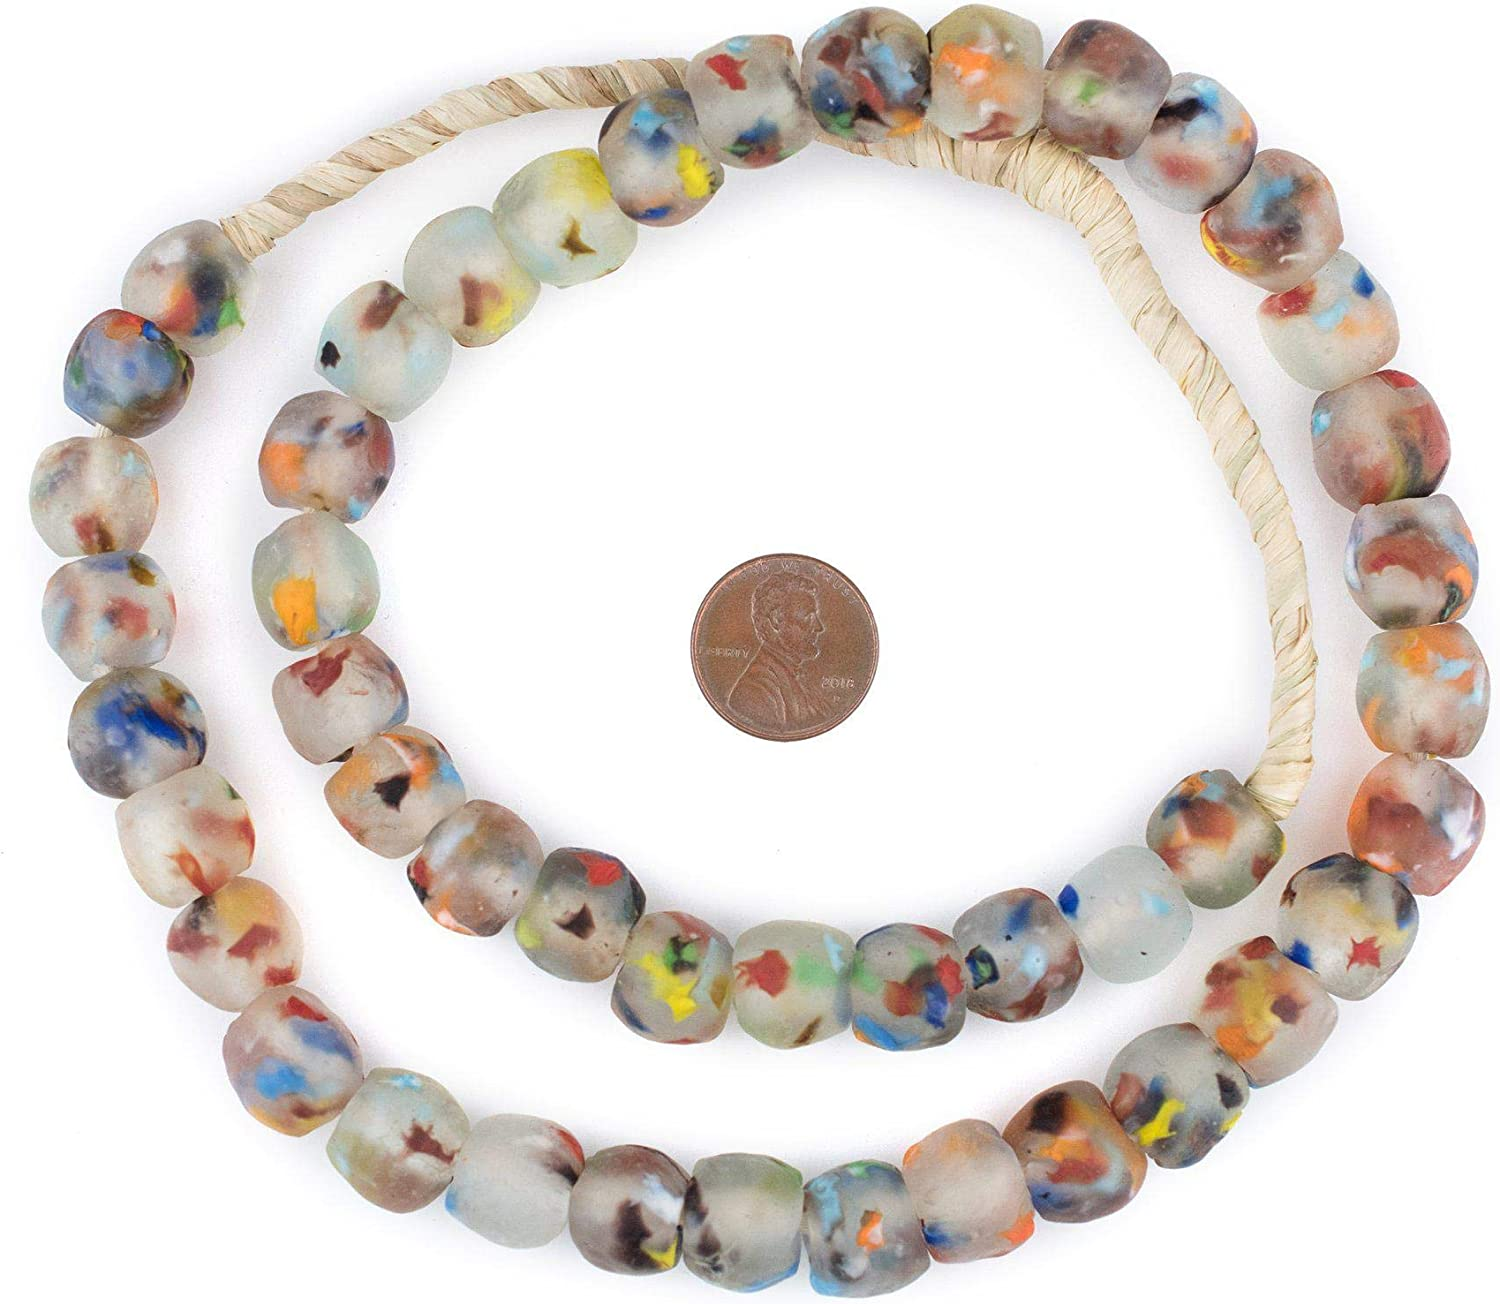 Old Ghana Medley Trade Beads 8mm African Multicolor Mixed Glass 32 Inch Strand